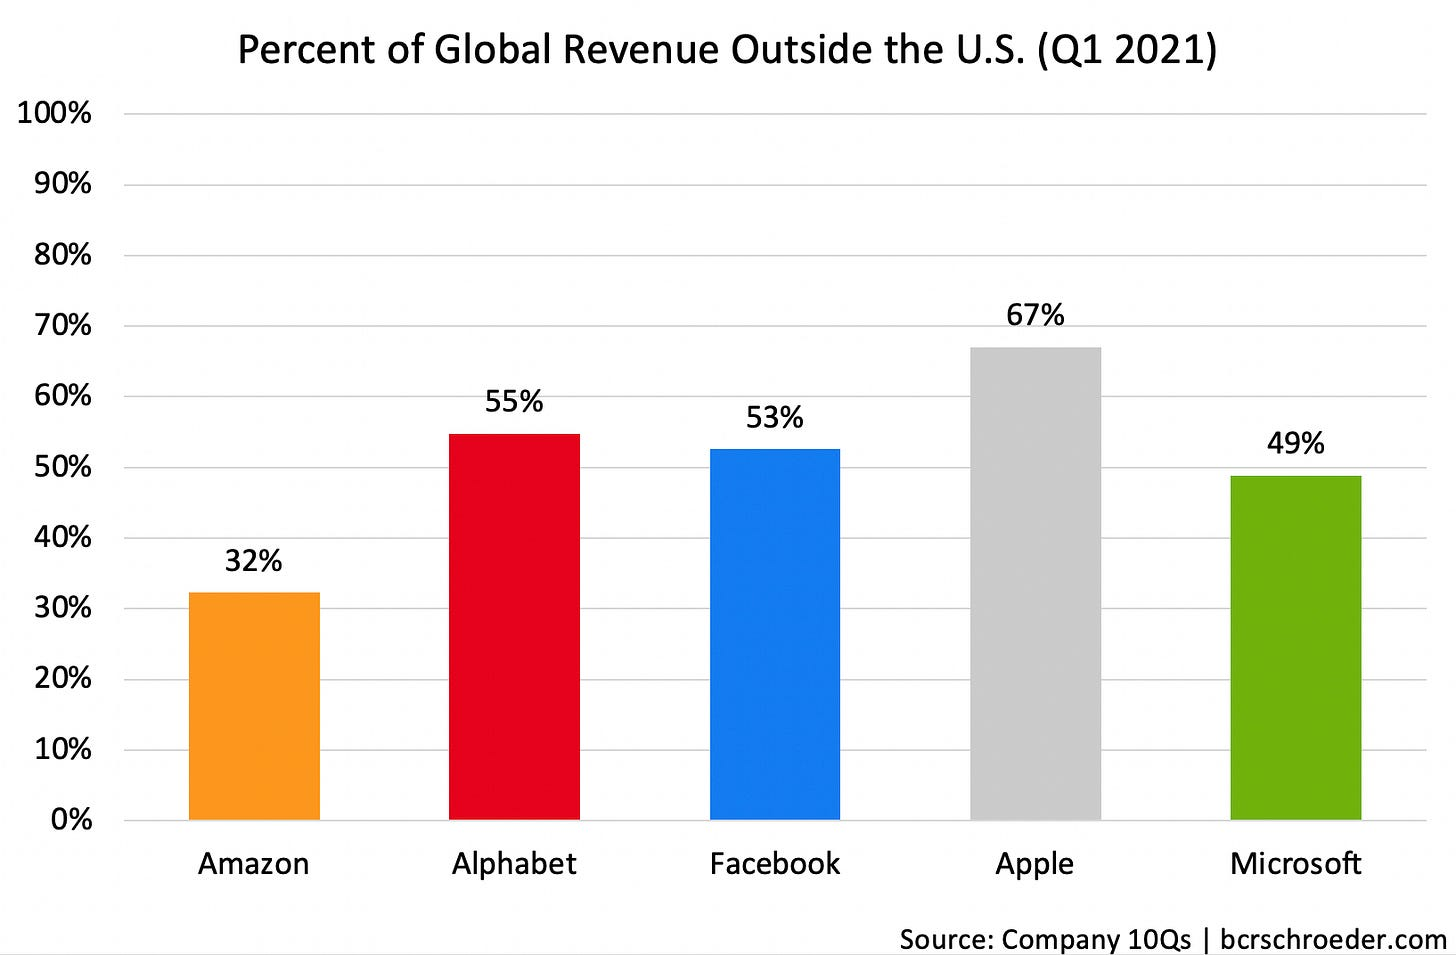 Chart showing % of global revenue outside the U.S. for Amazon, Alphabet, Facebook, Apple and Microsoft